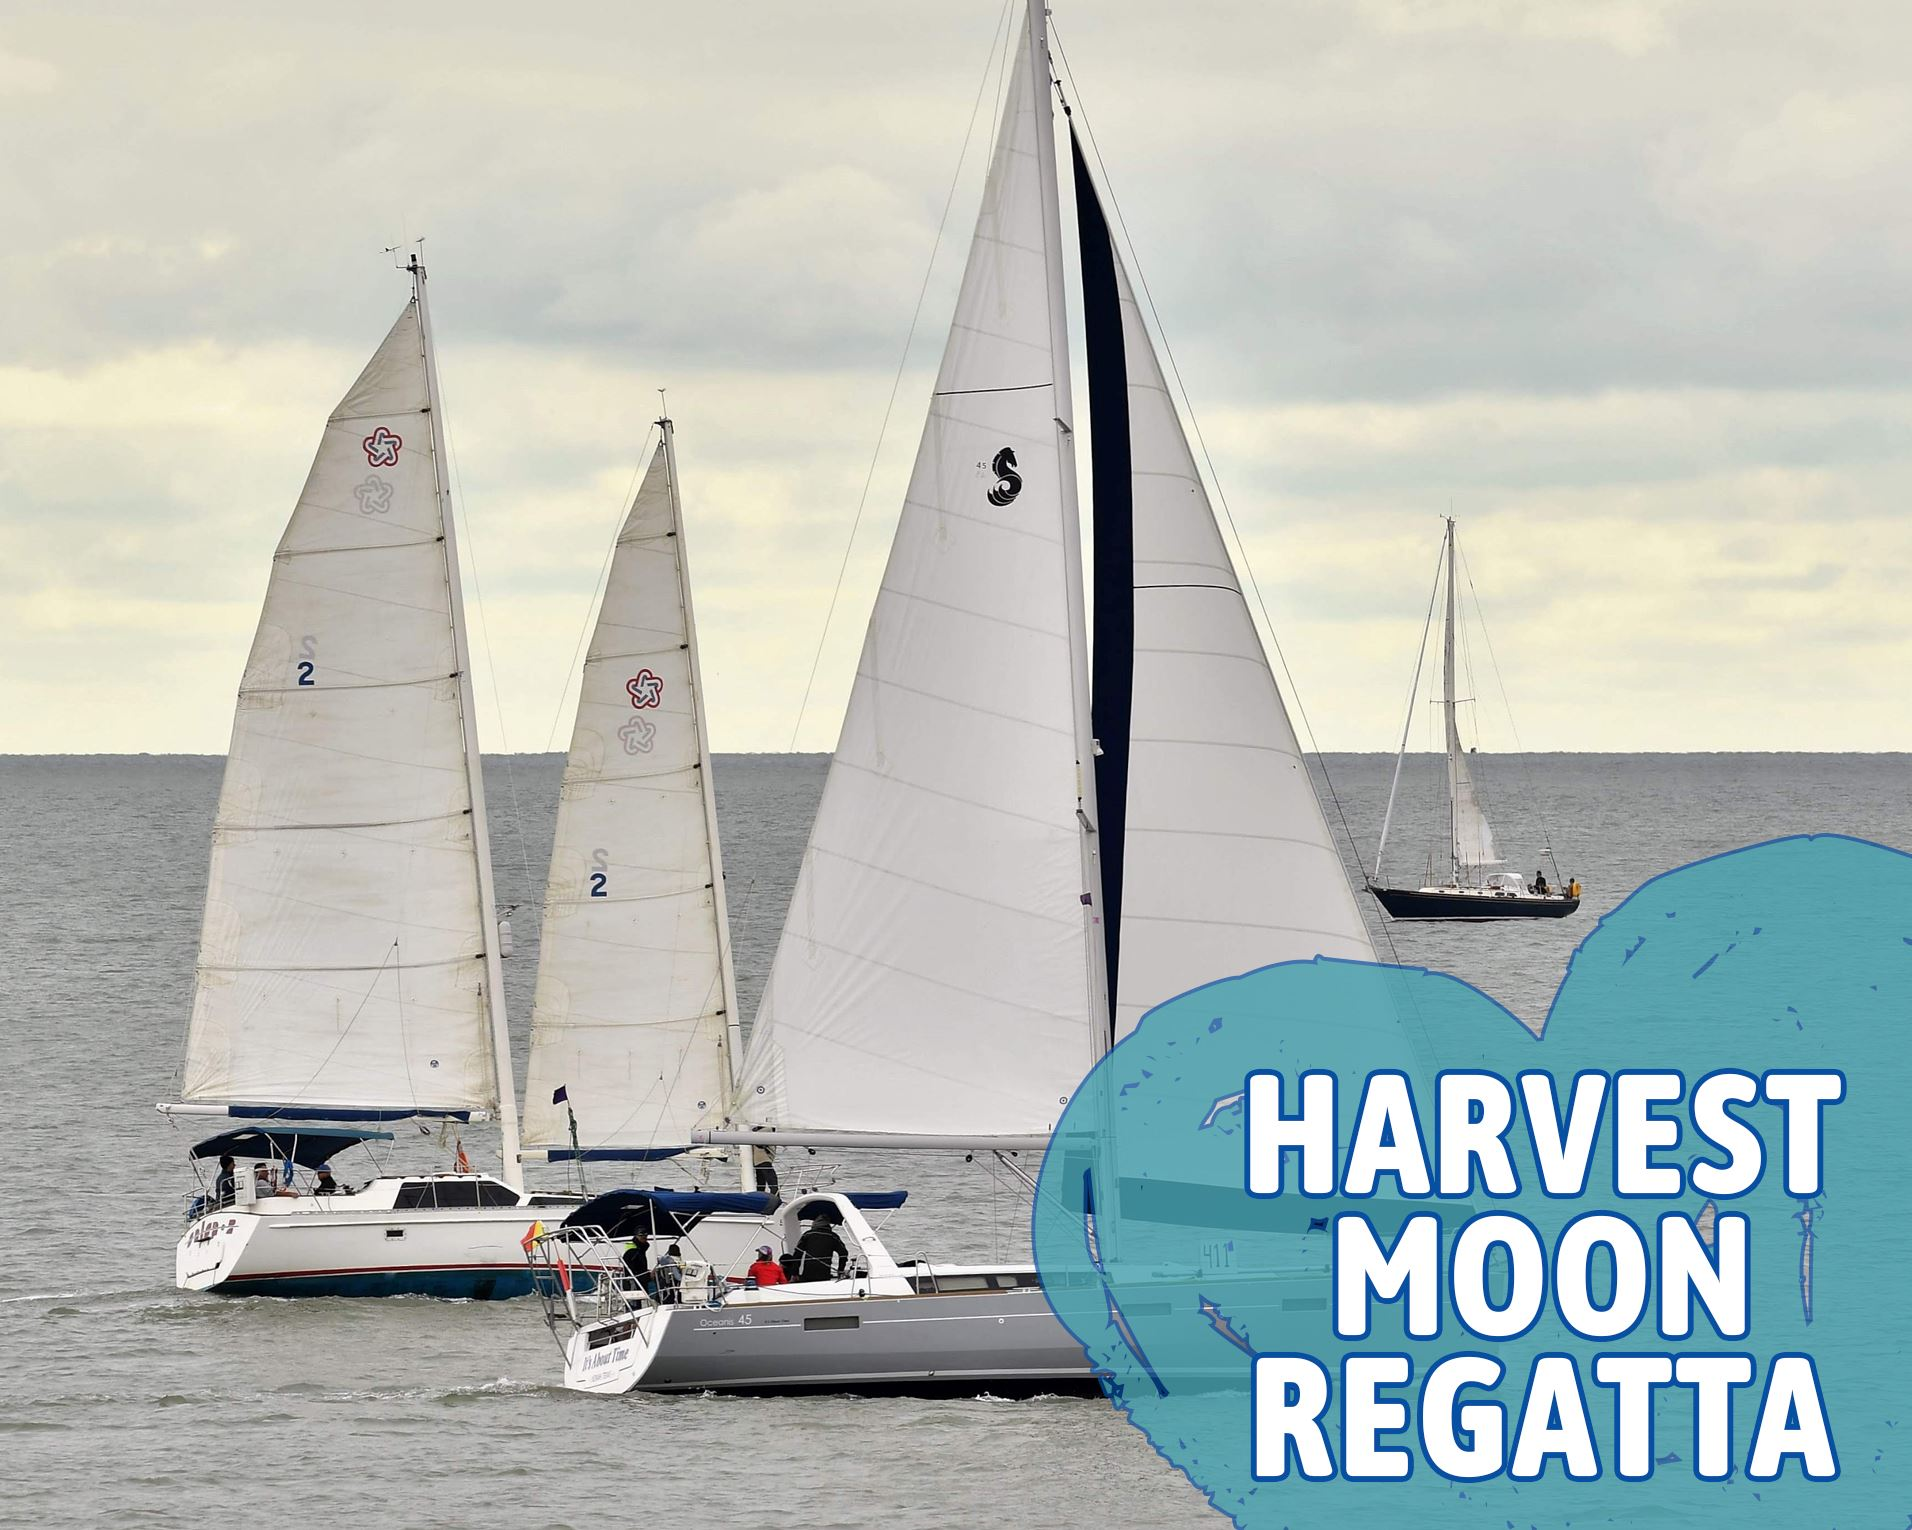 _Harvest Moon Regatta